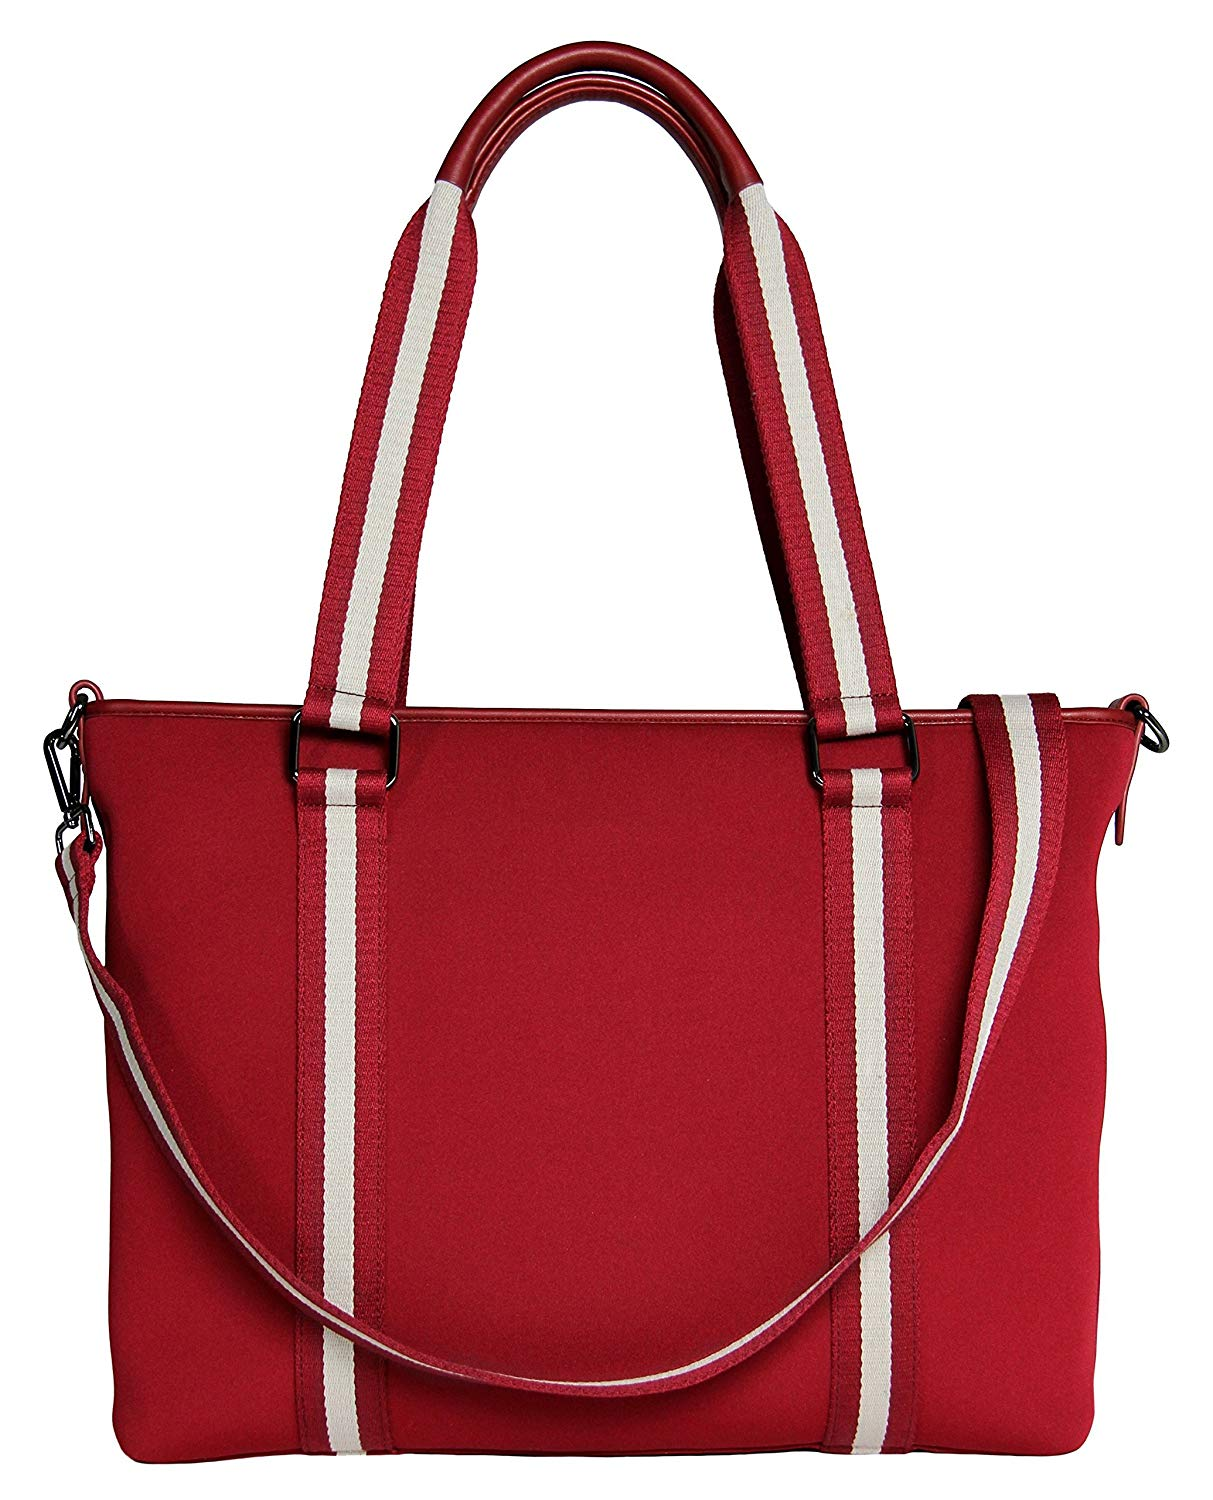 12 Best Fashionable & Affordable Laptop Bags 4